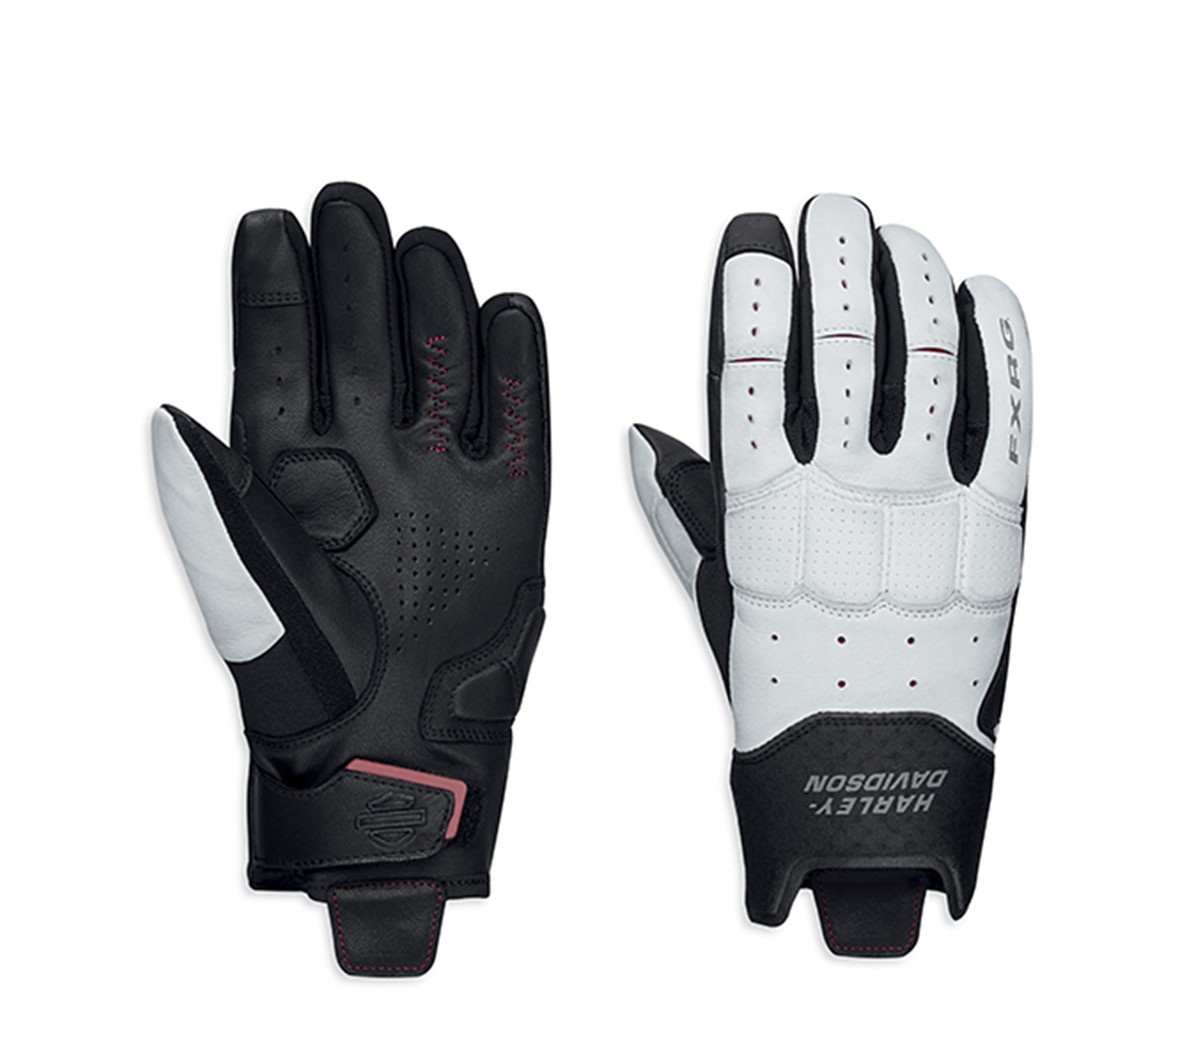 Motocyklové rukavice Women's FXRG Lightweight Gloves 98331-19EW